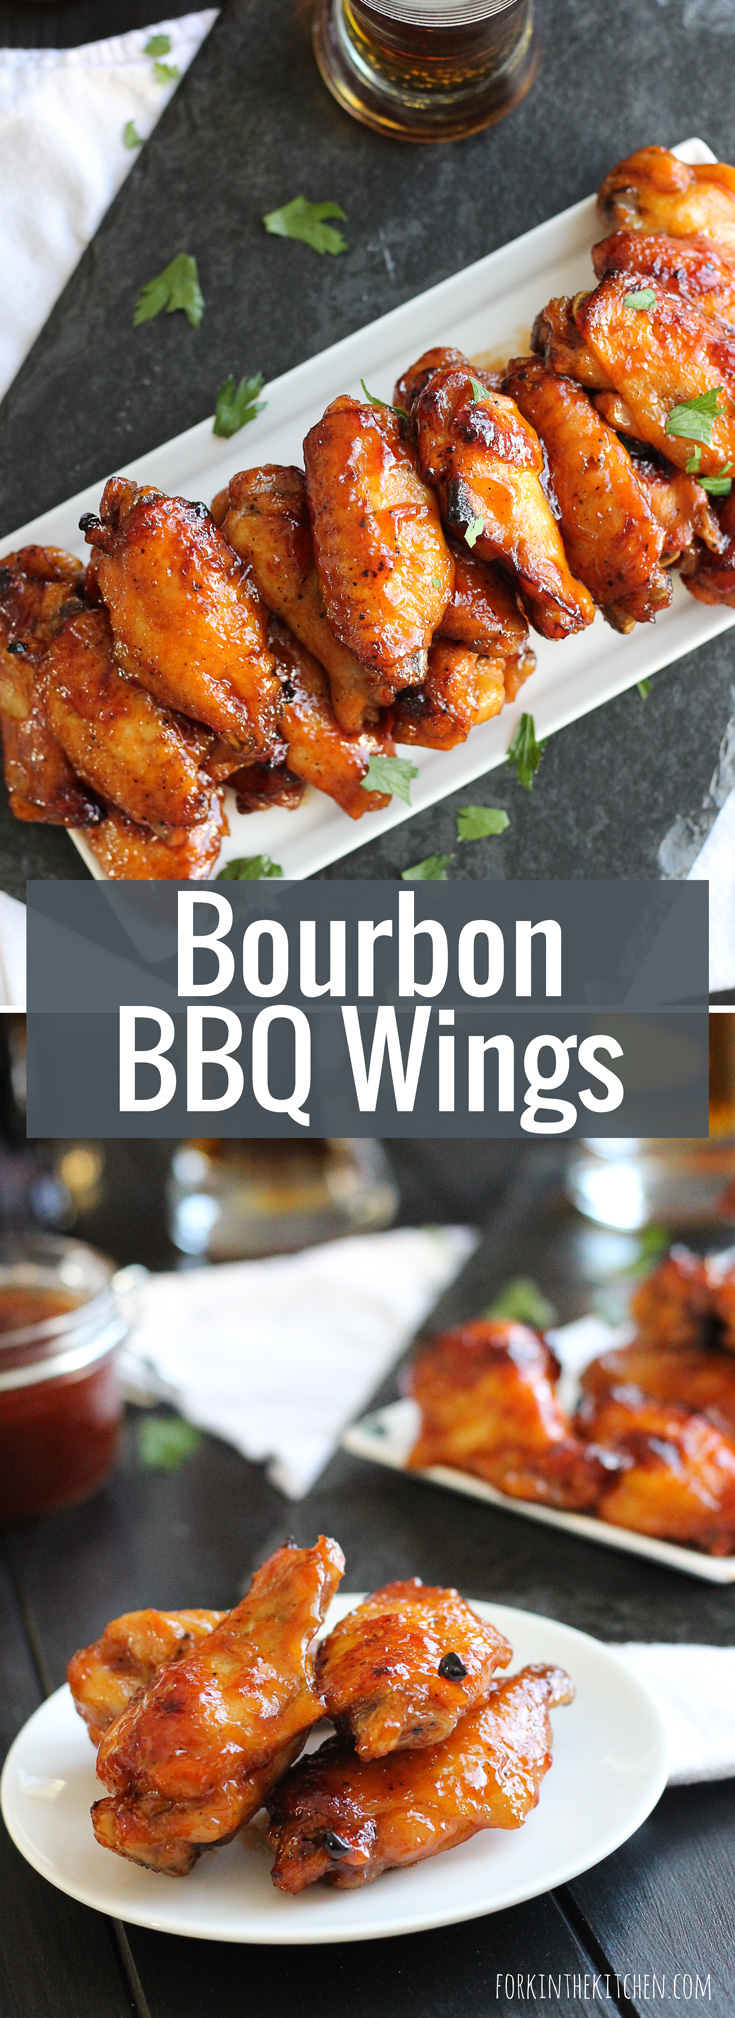 Bourbon BBQ Wings - perfect for summer cookouts or last minute get togethers! // Fork in the Kitchen